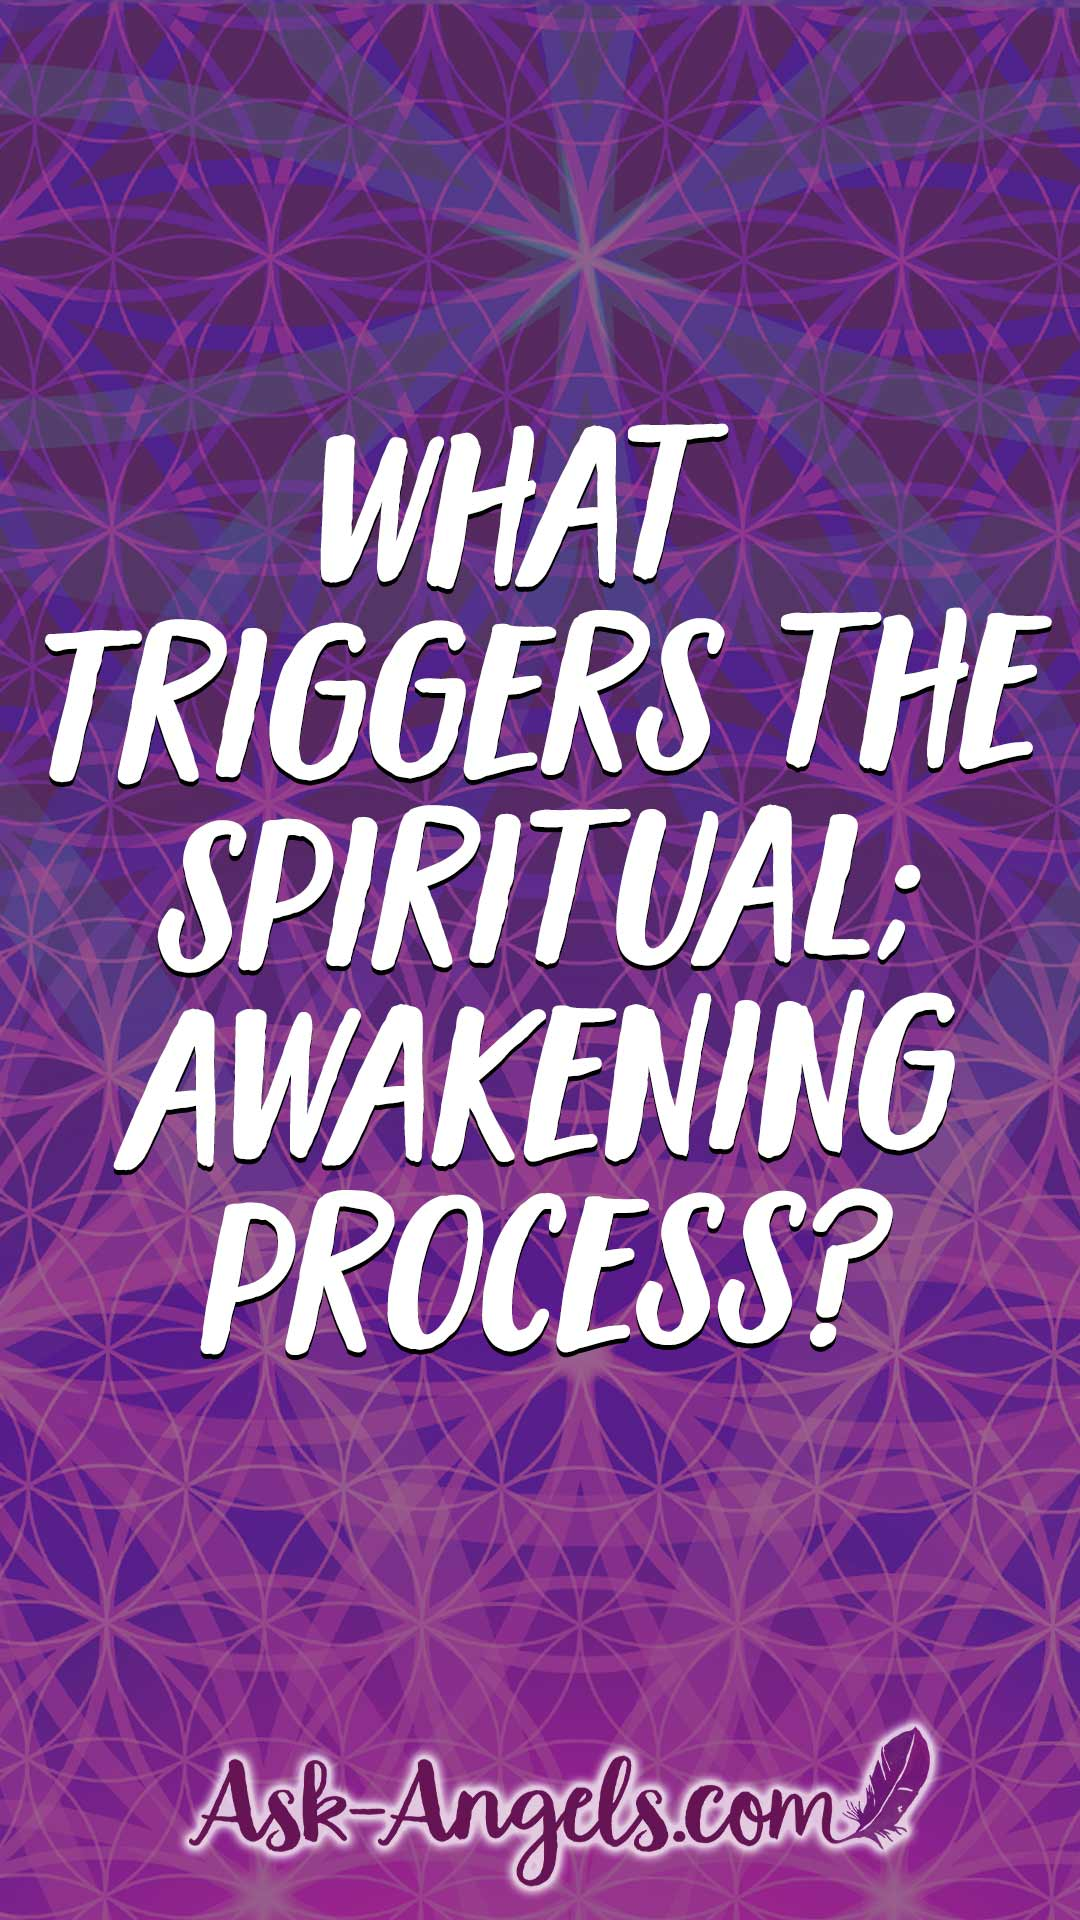 Spiritual Awakening Process - Your Initiation Into Higher Consciousness